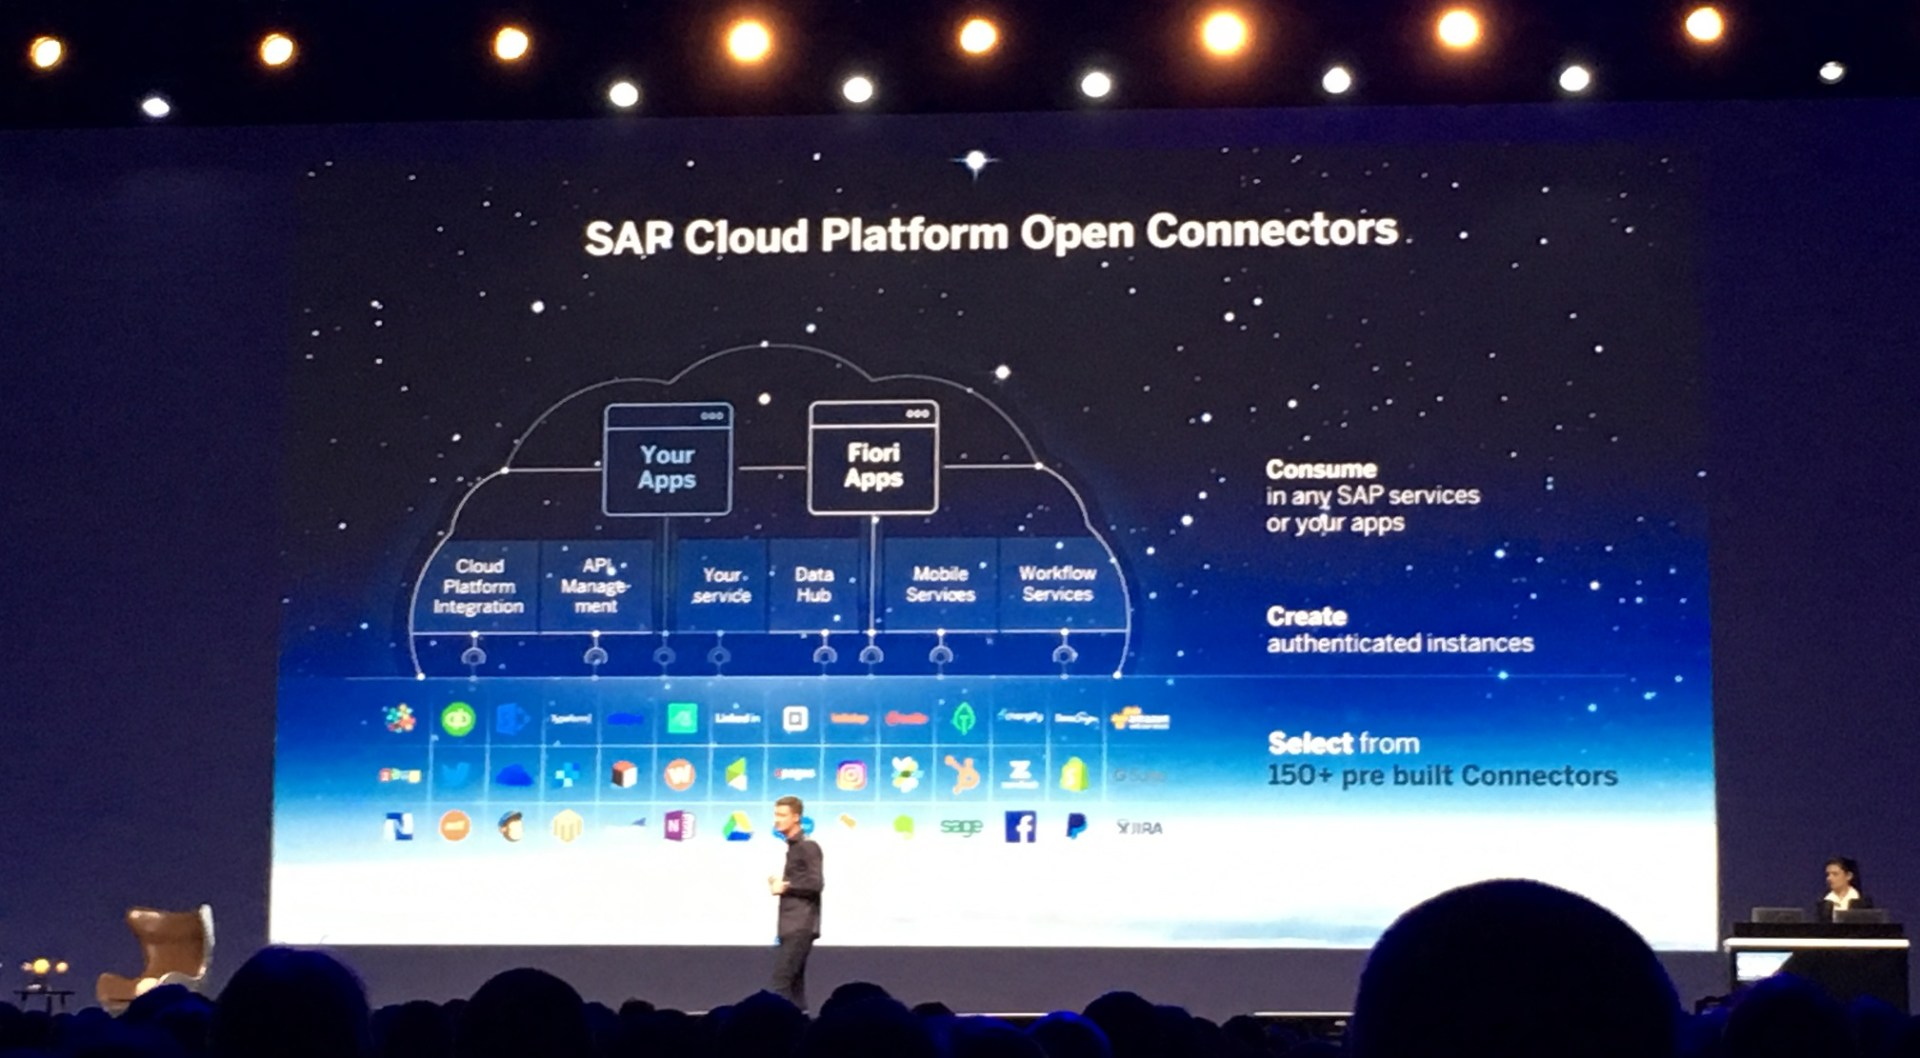 SAP Cloud Platform Open Connectors